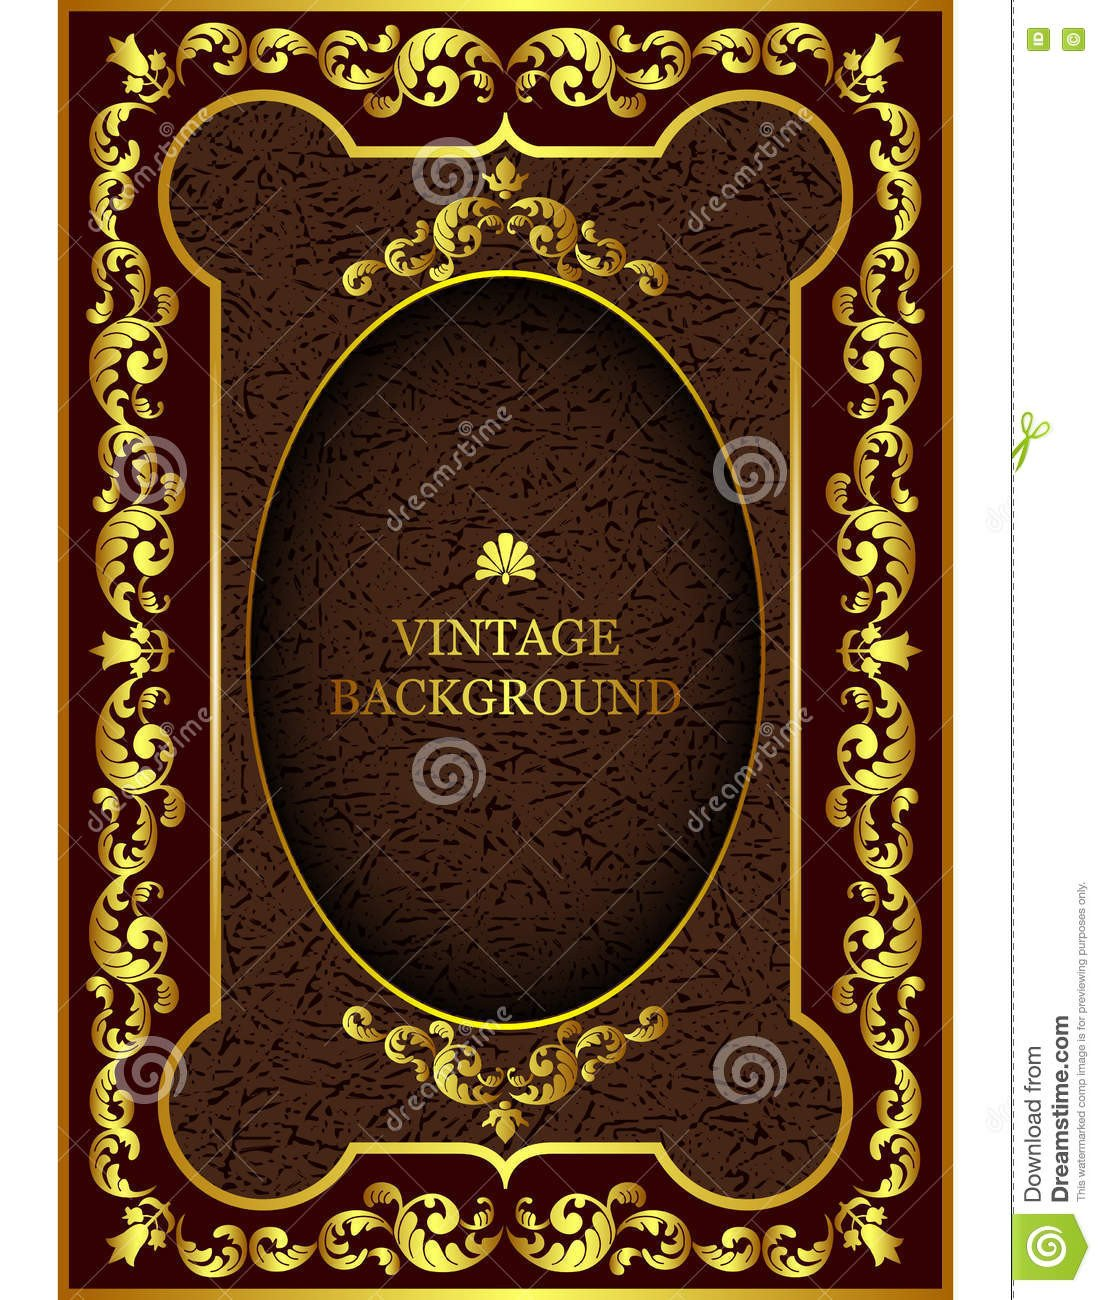 Old Book Cover Template Vector Luxury Vintage Border In the Baroque Style with